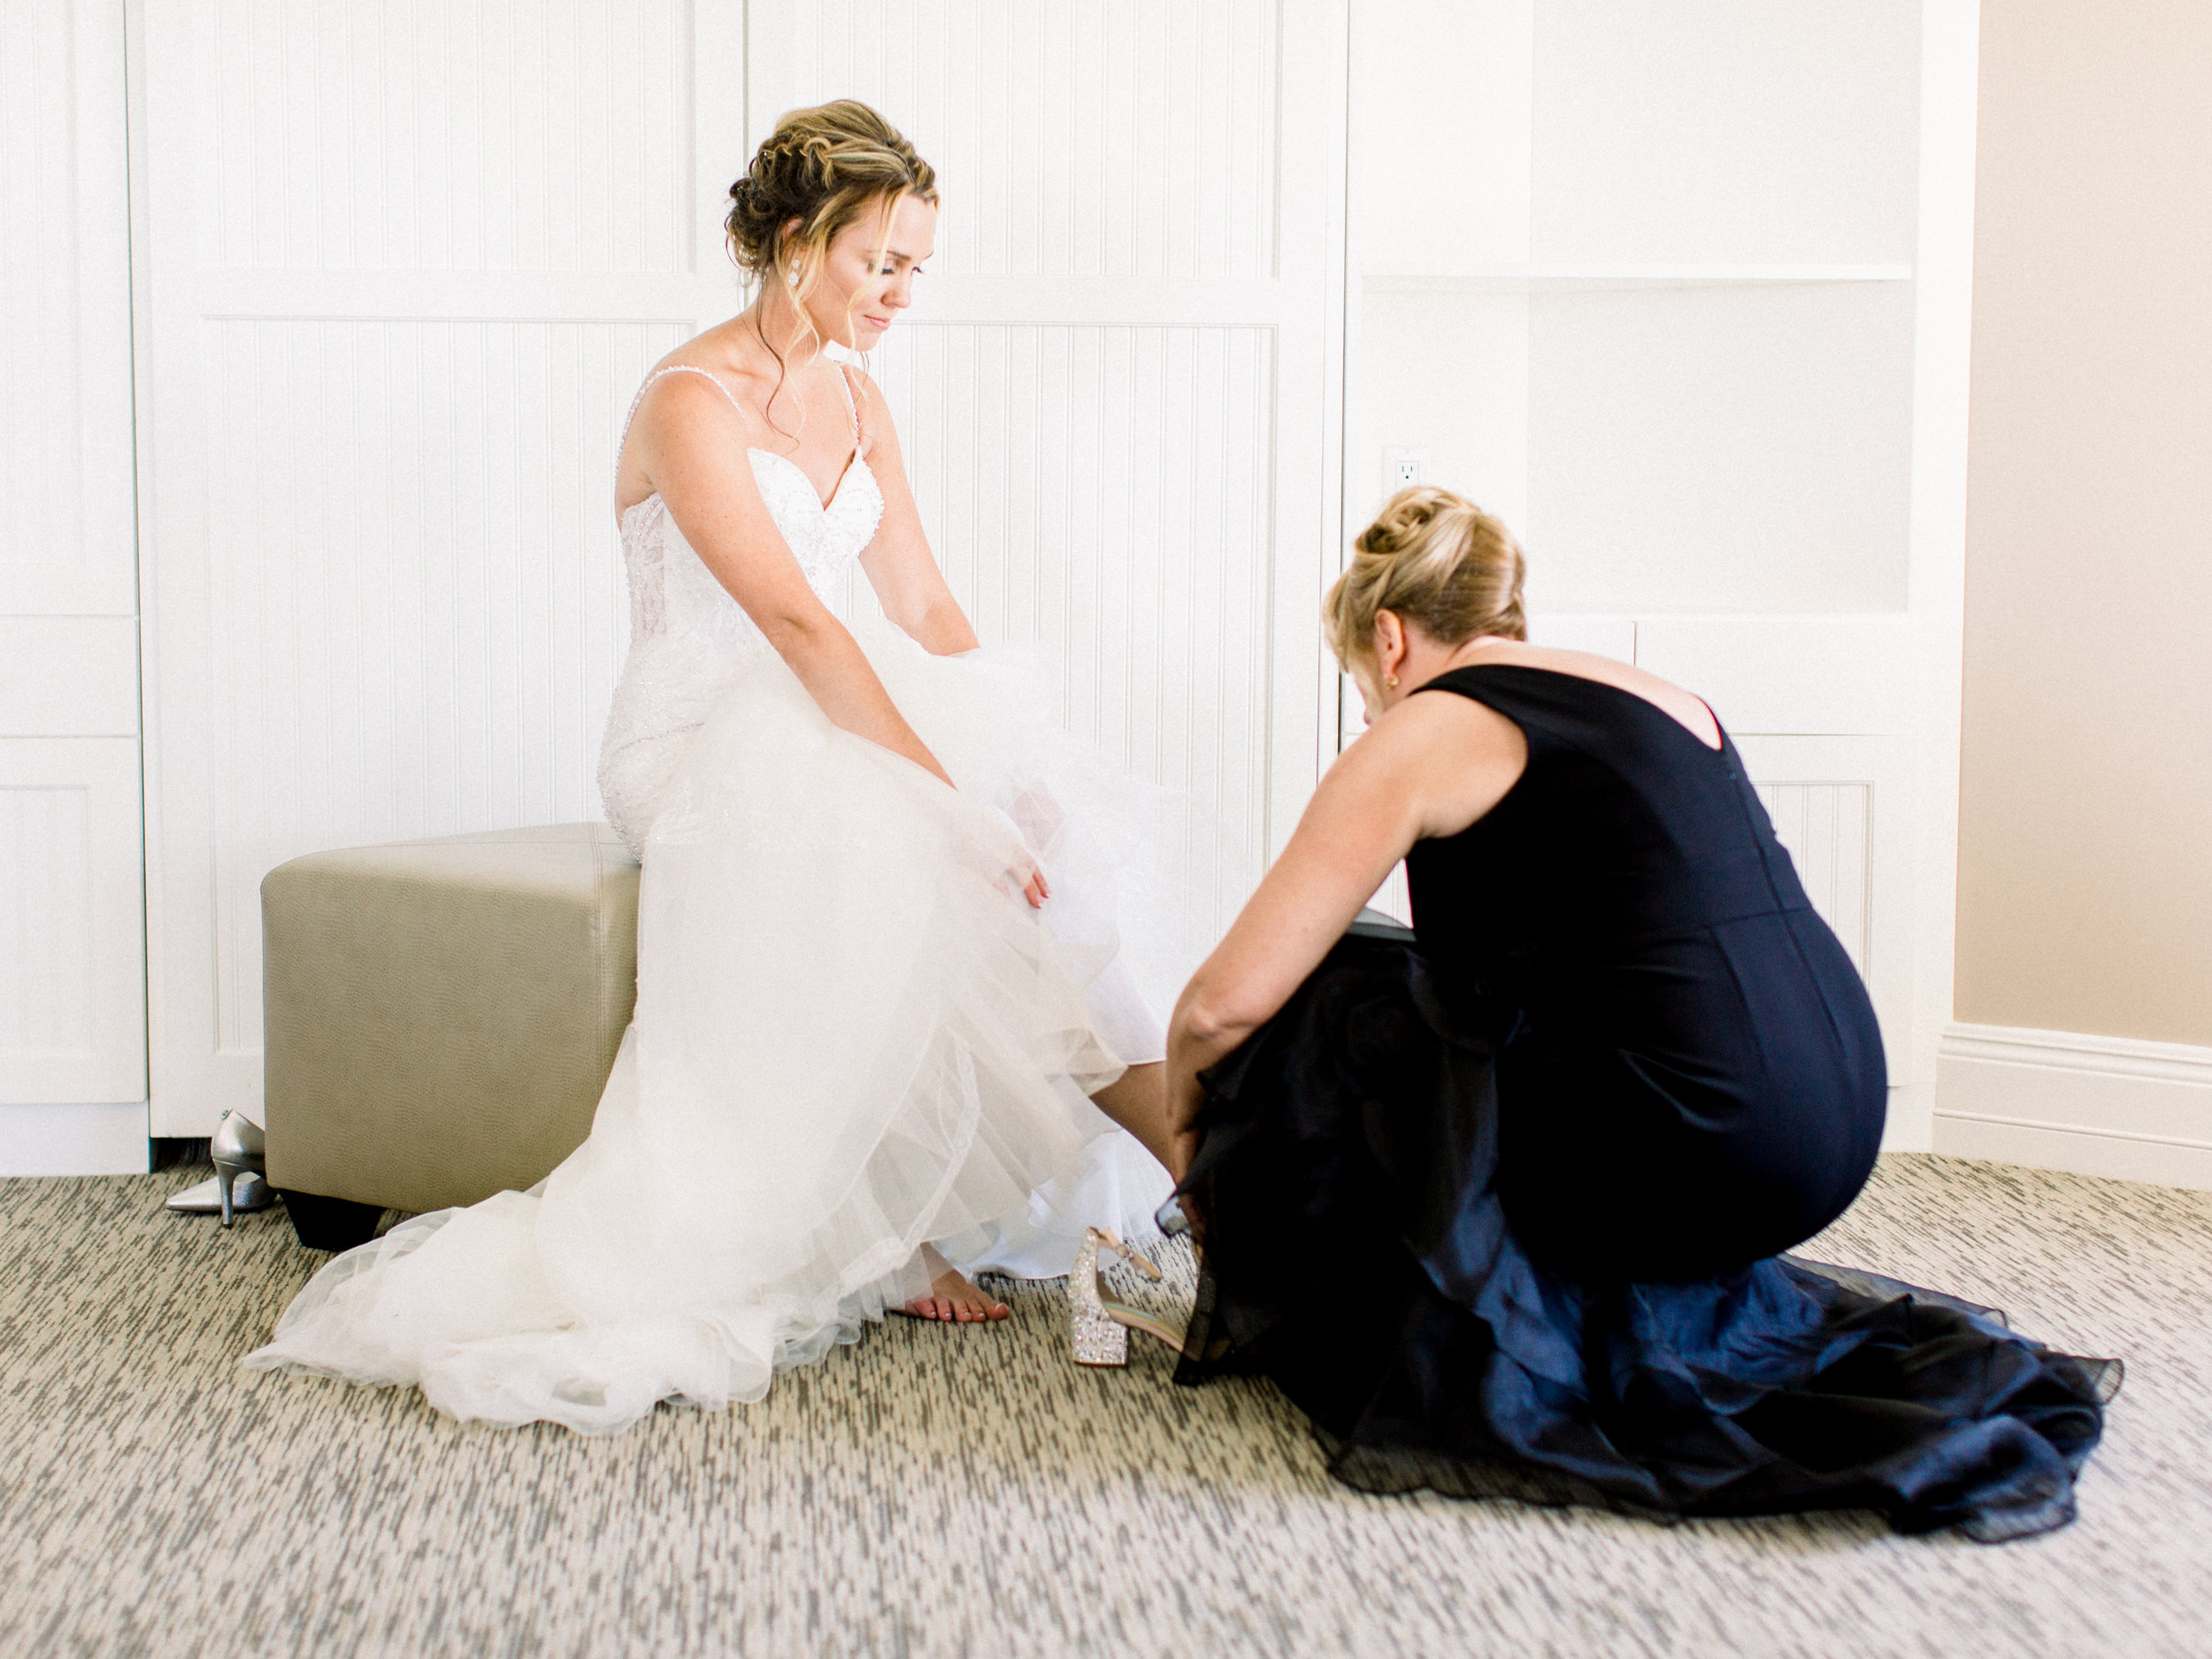 Noss+Wedding+Getting+Ready-131.jpg